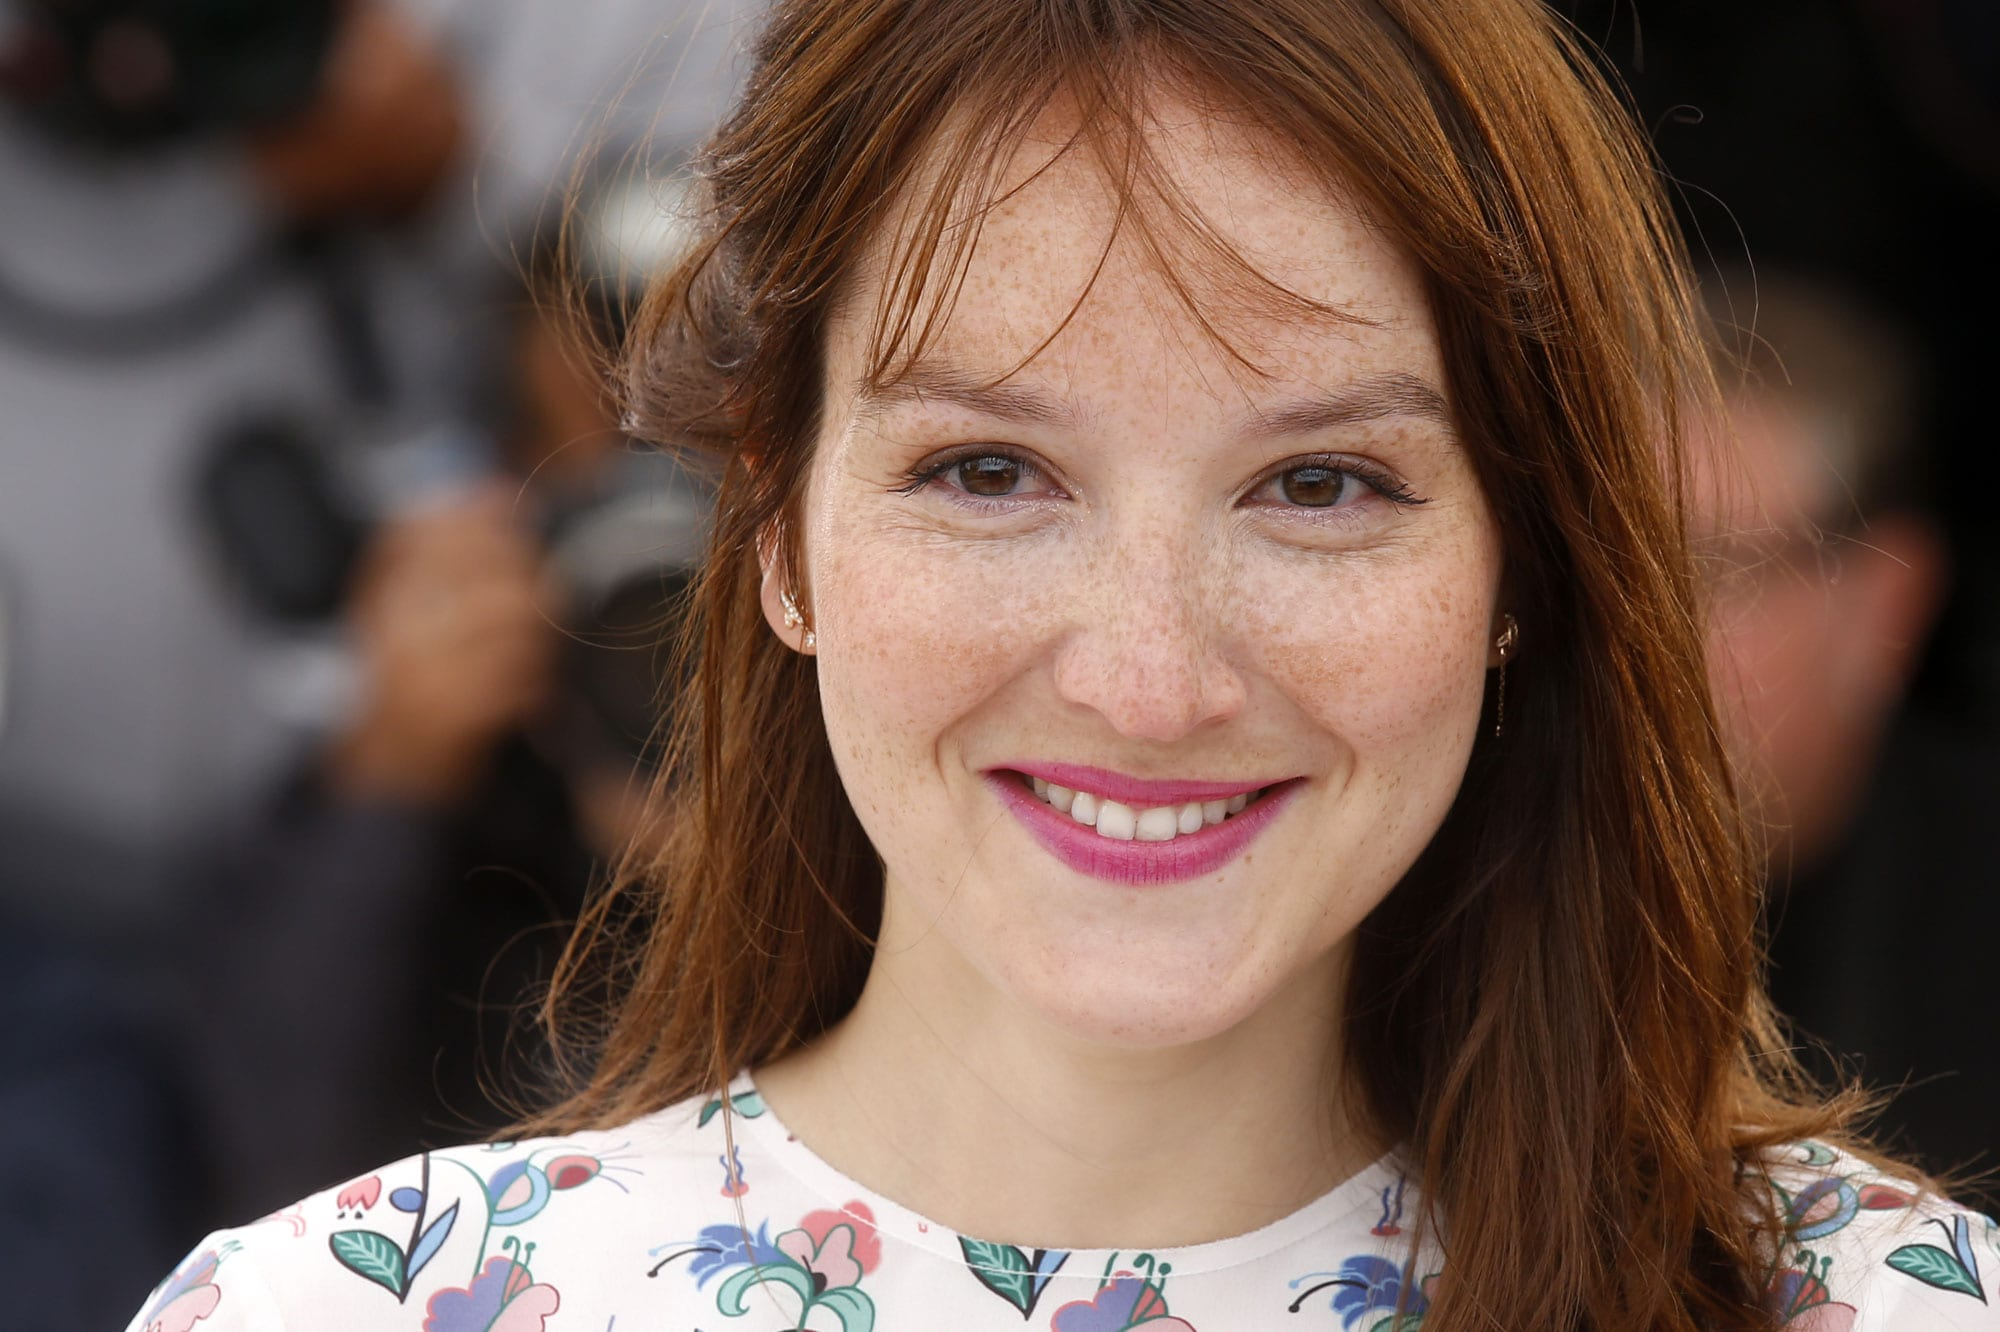 Anais Demoustier anais demoustier hd wallpapers | 7wallpapers